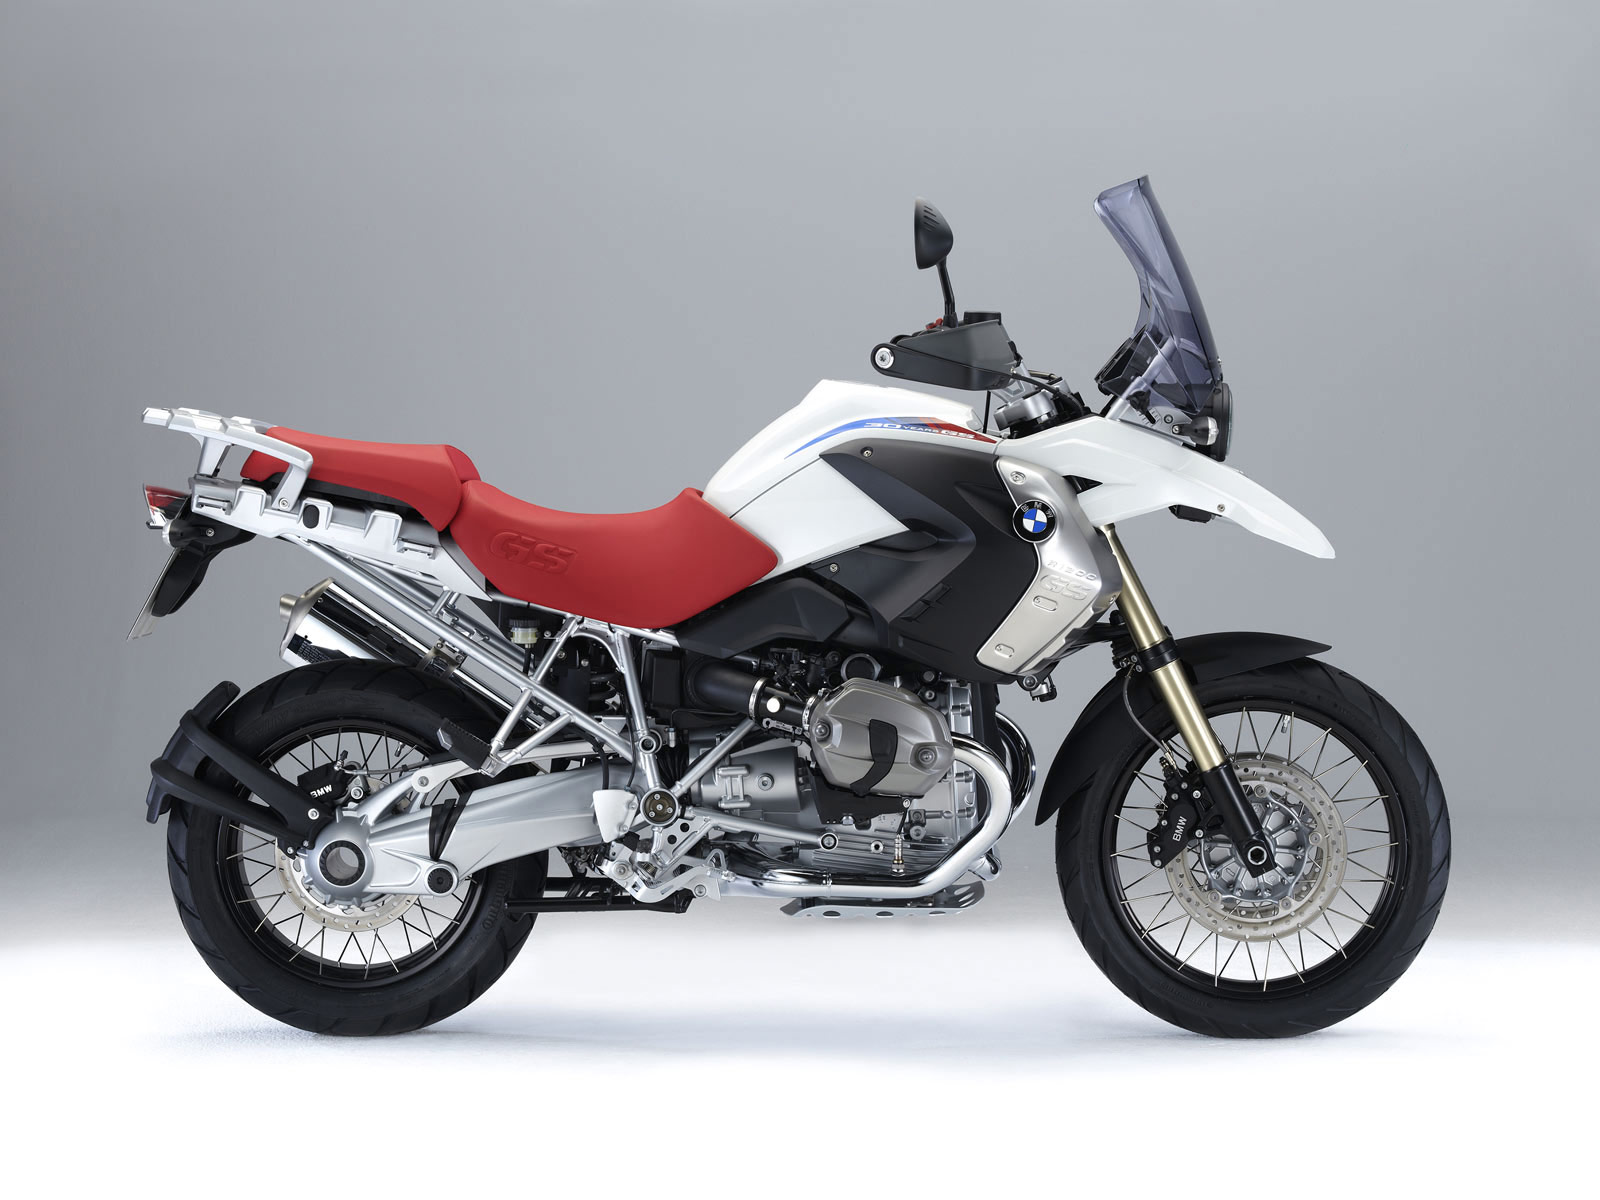 bmw f1200gs 30 years gs 2010 insurance informations. Black Bedroom Furniture Sets. Home Design Ideas